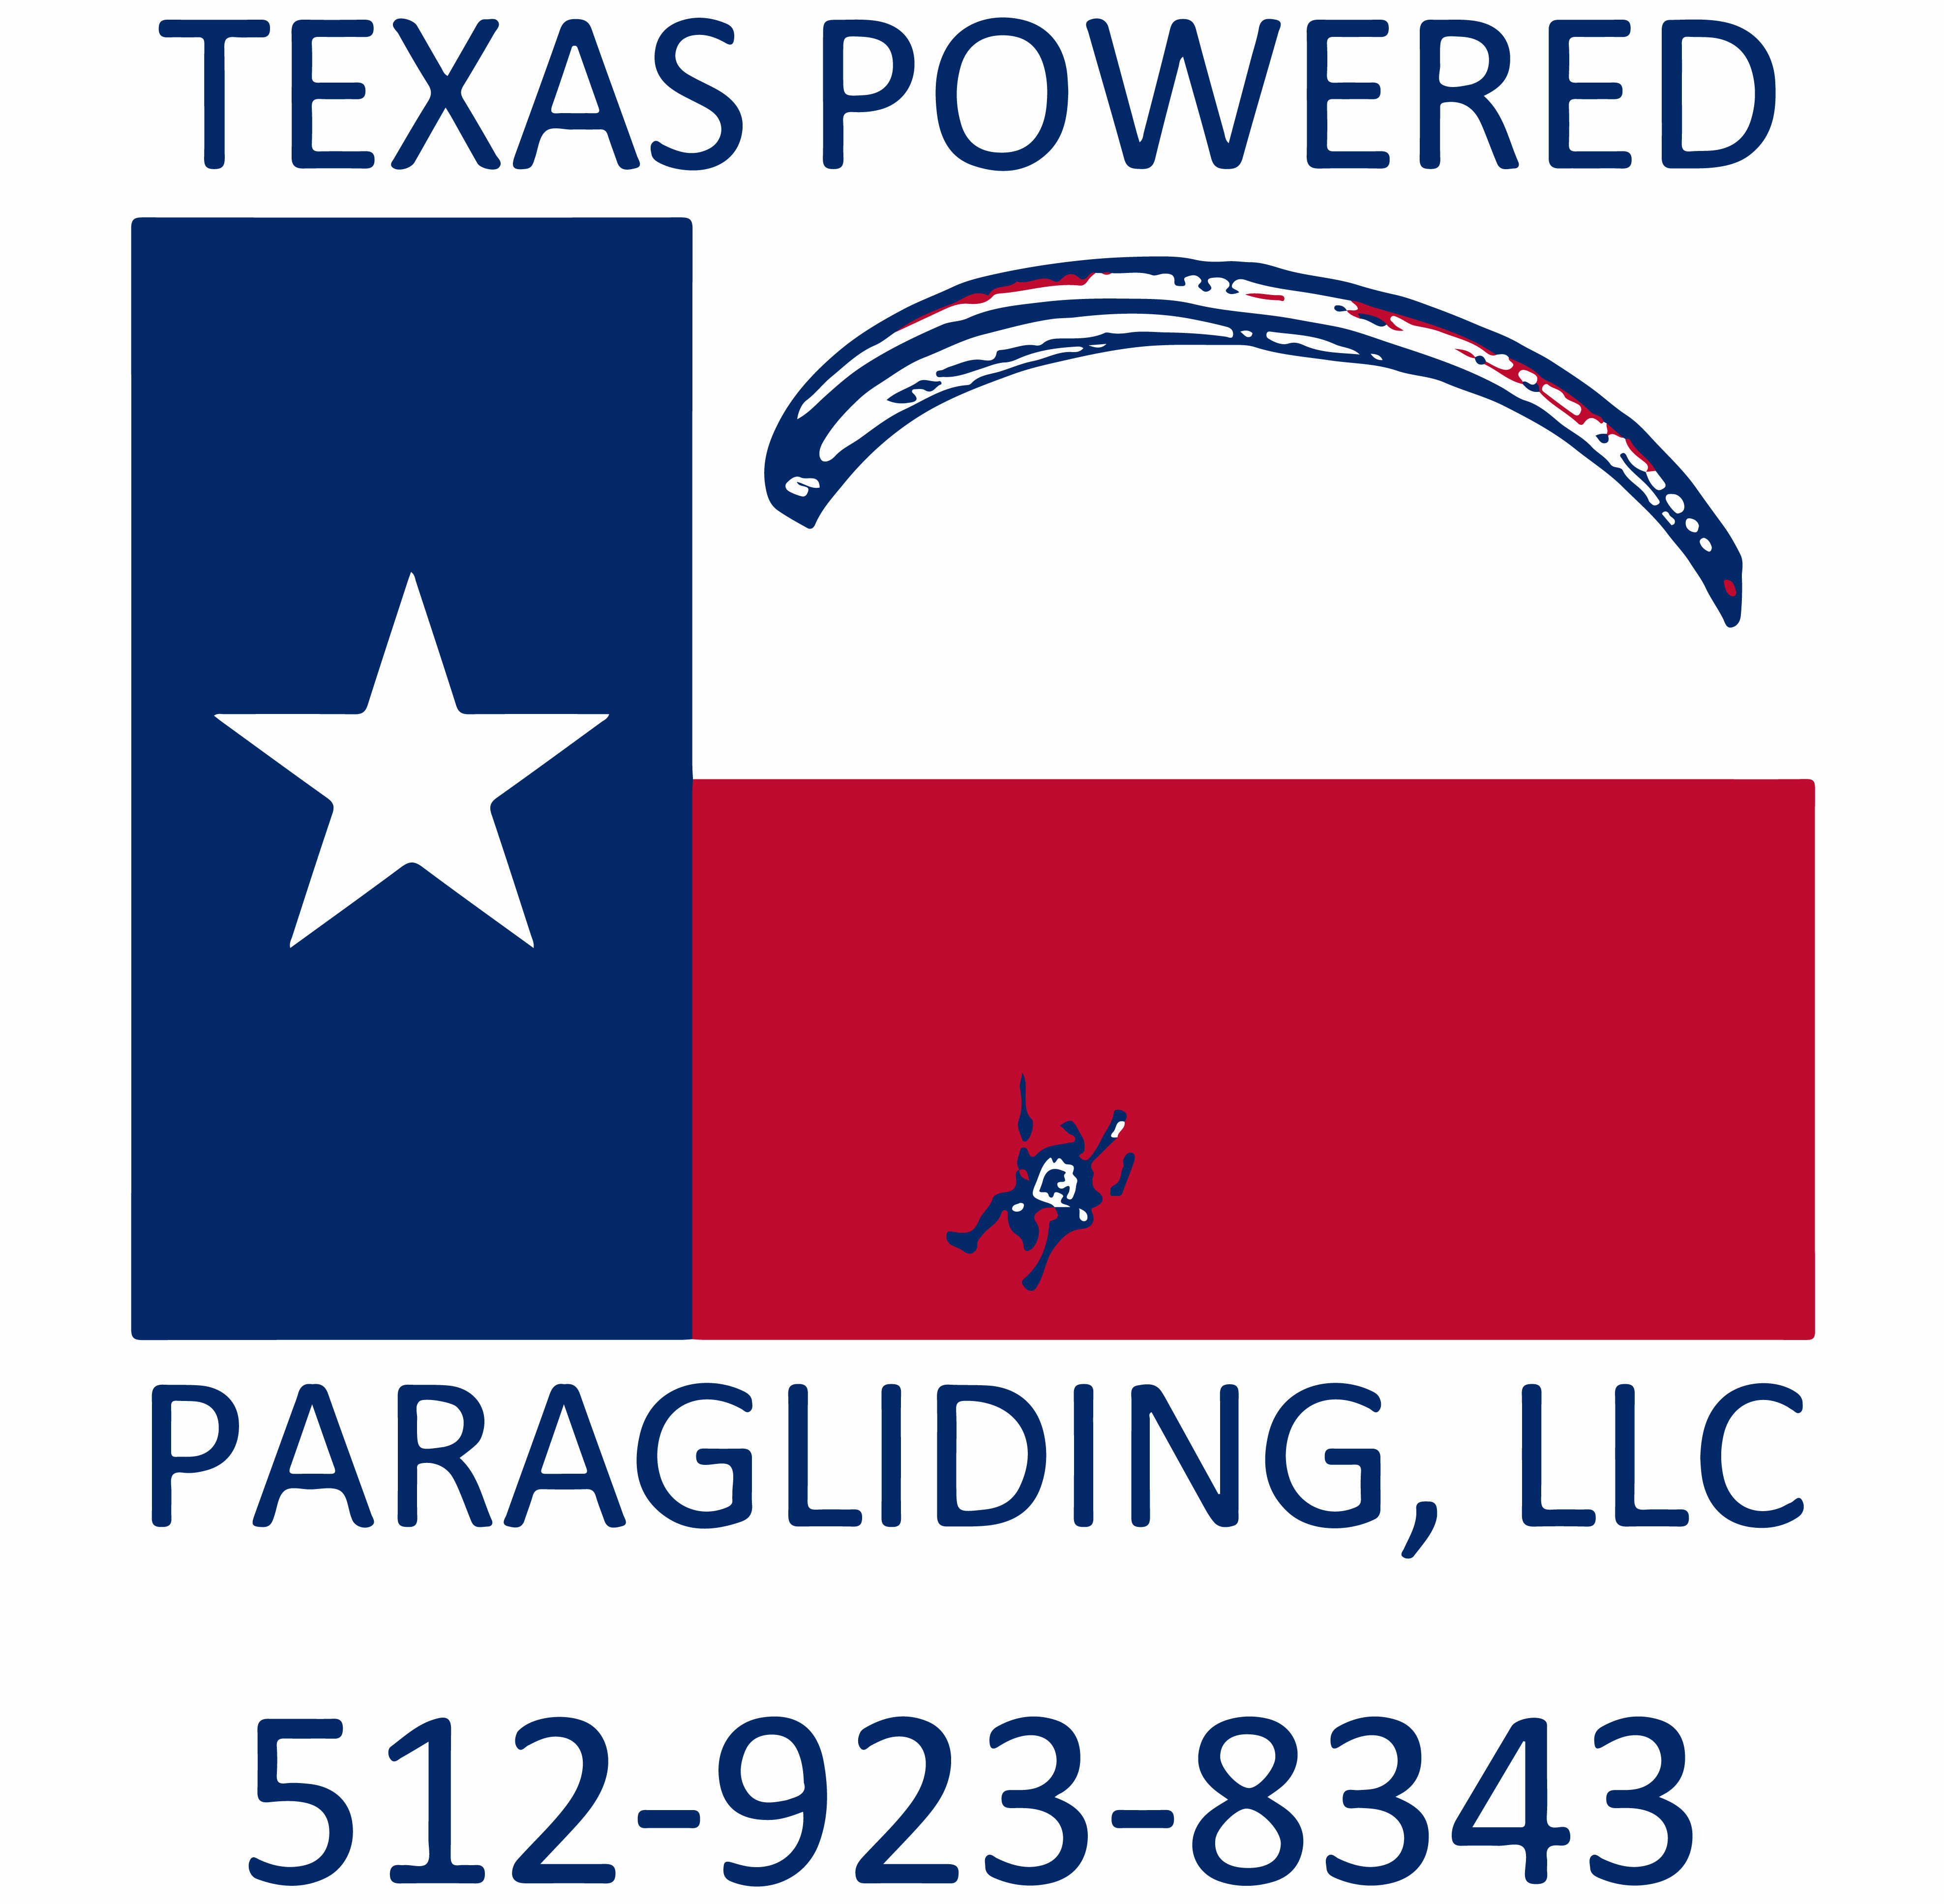 Texas Powered Paragliding, LLC – Step Into The Sky! 512-923-8343